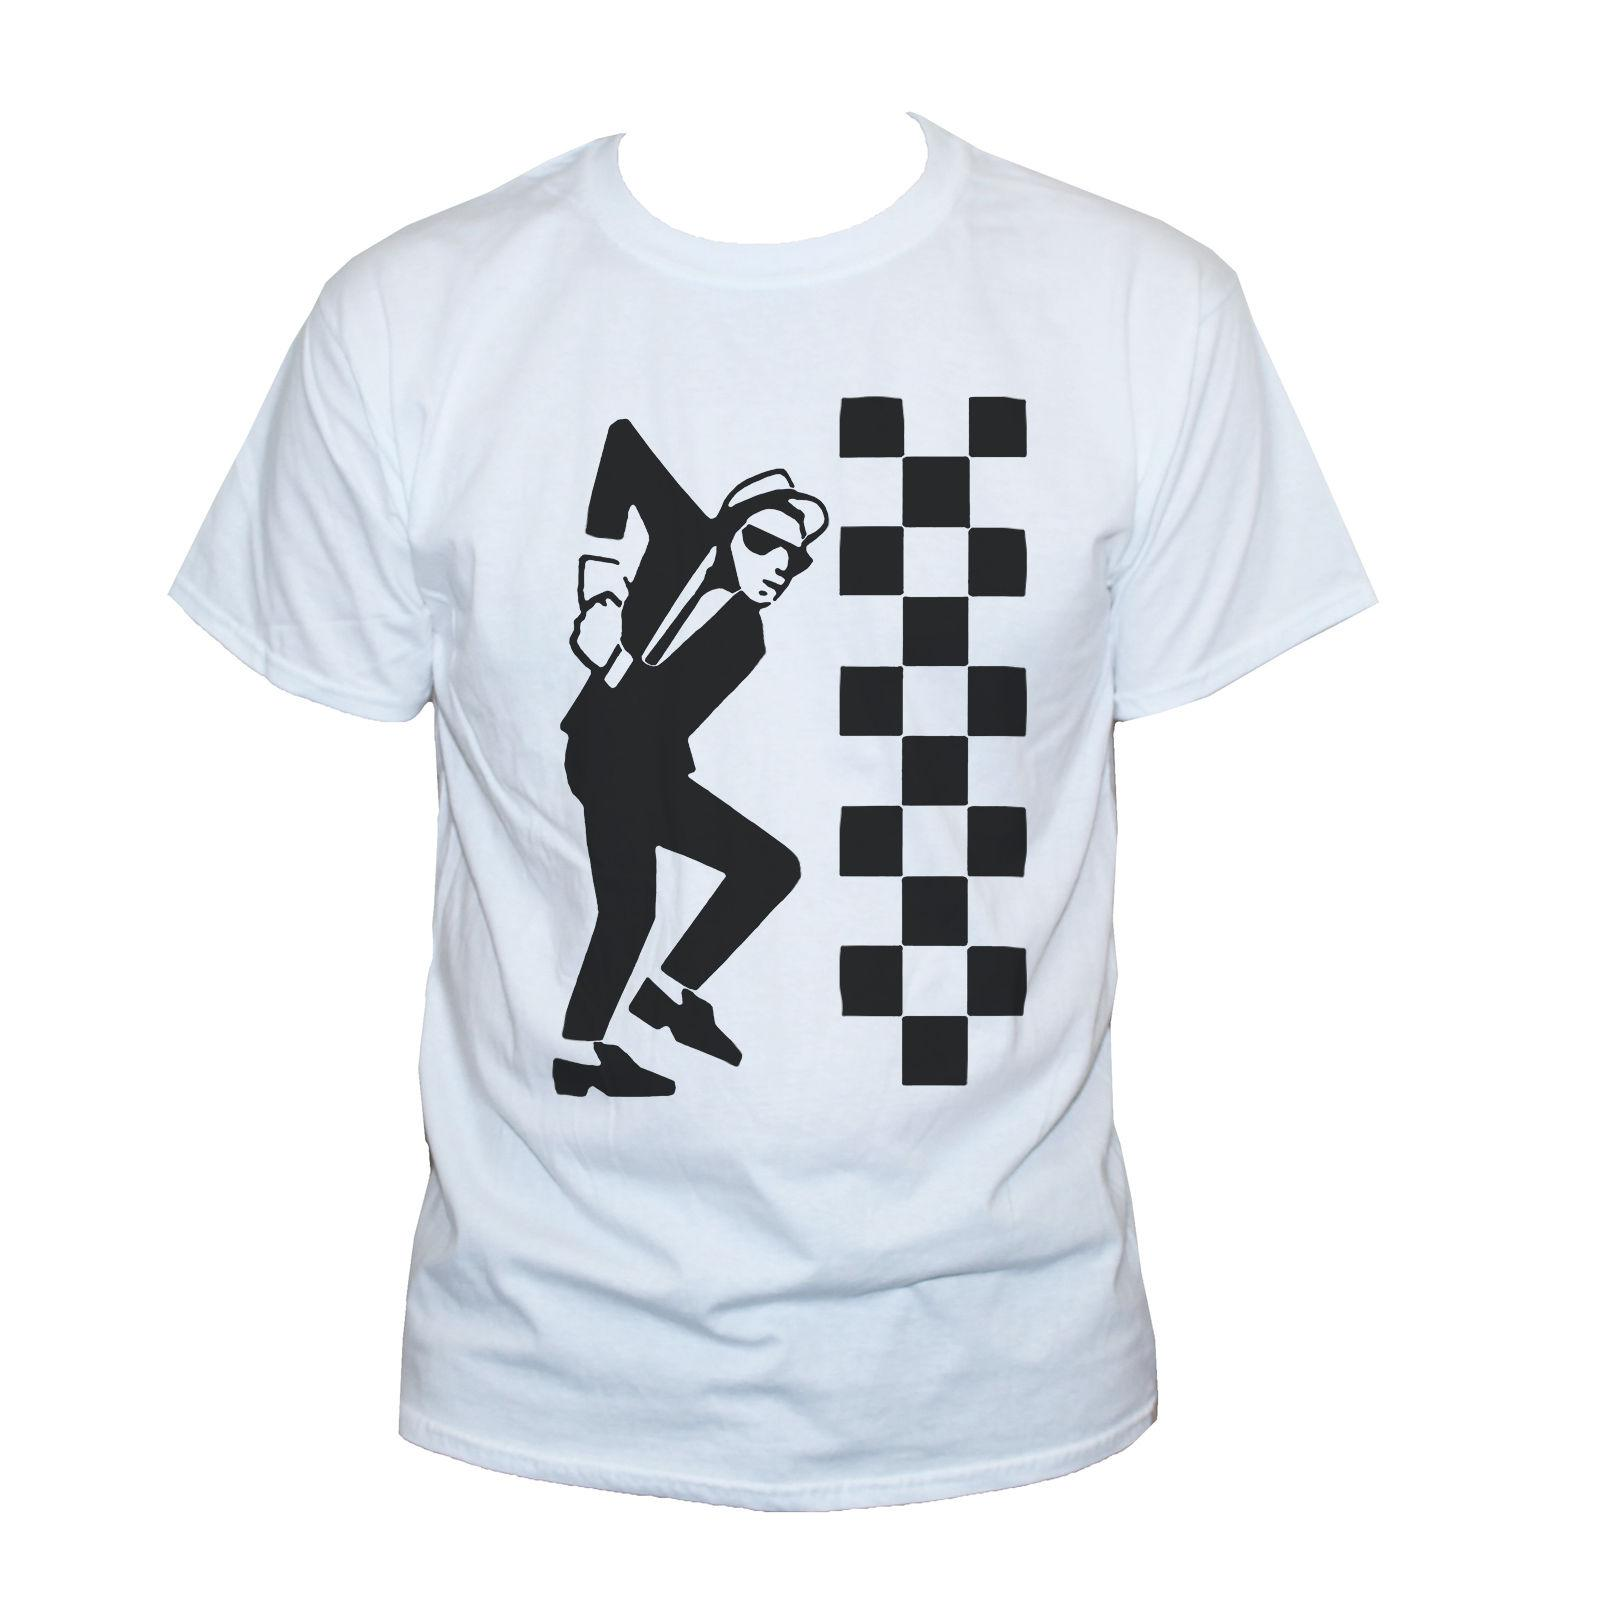 64c6c6e7d Ska Dude Two Tone T Shirt Specials Reggae Cool Graphic Music Band ...